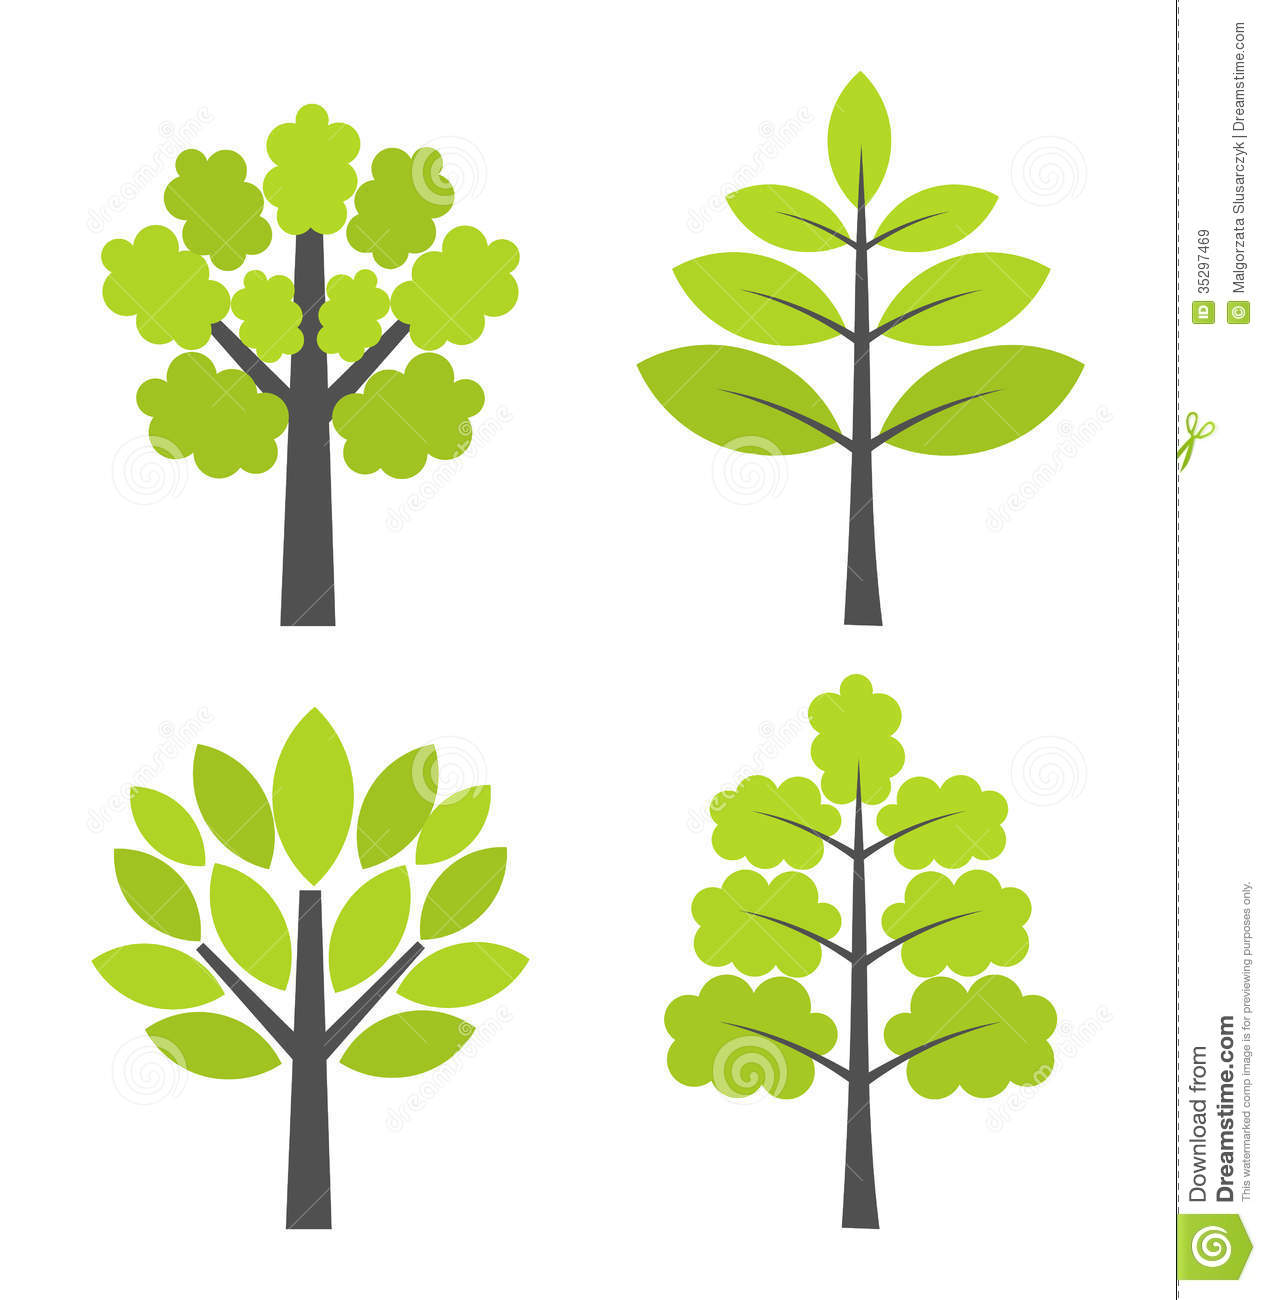 Trees Icons Royalty Free Stock Images - Image: 35297469